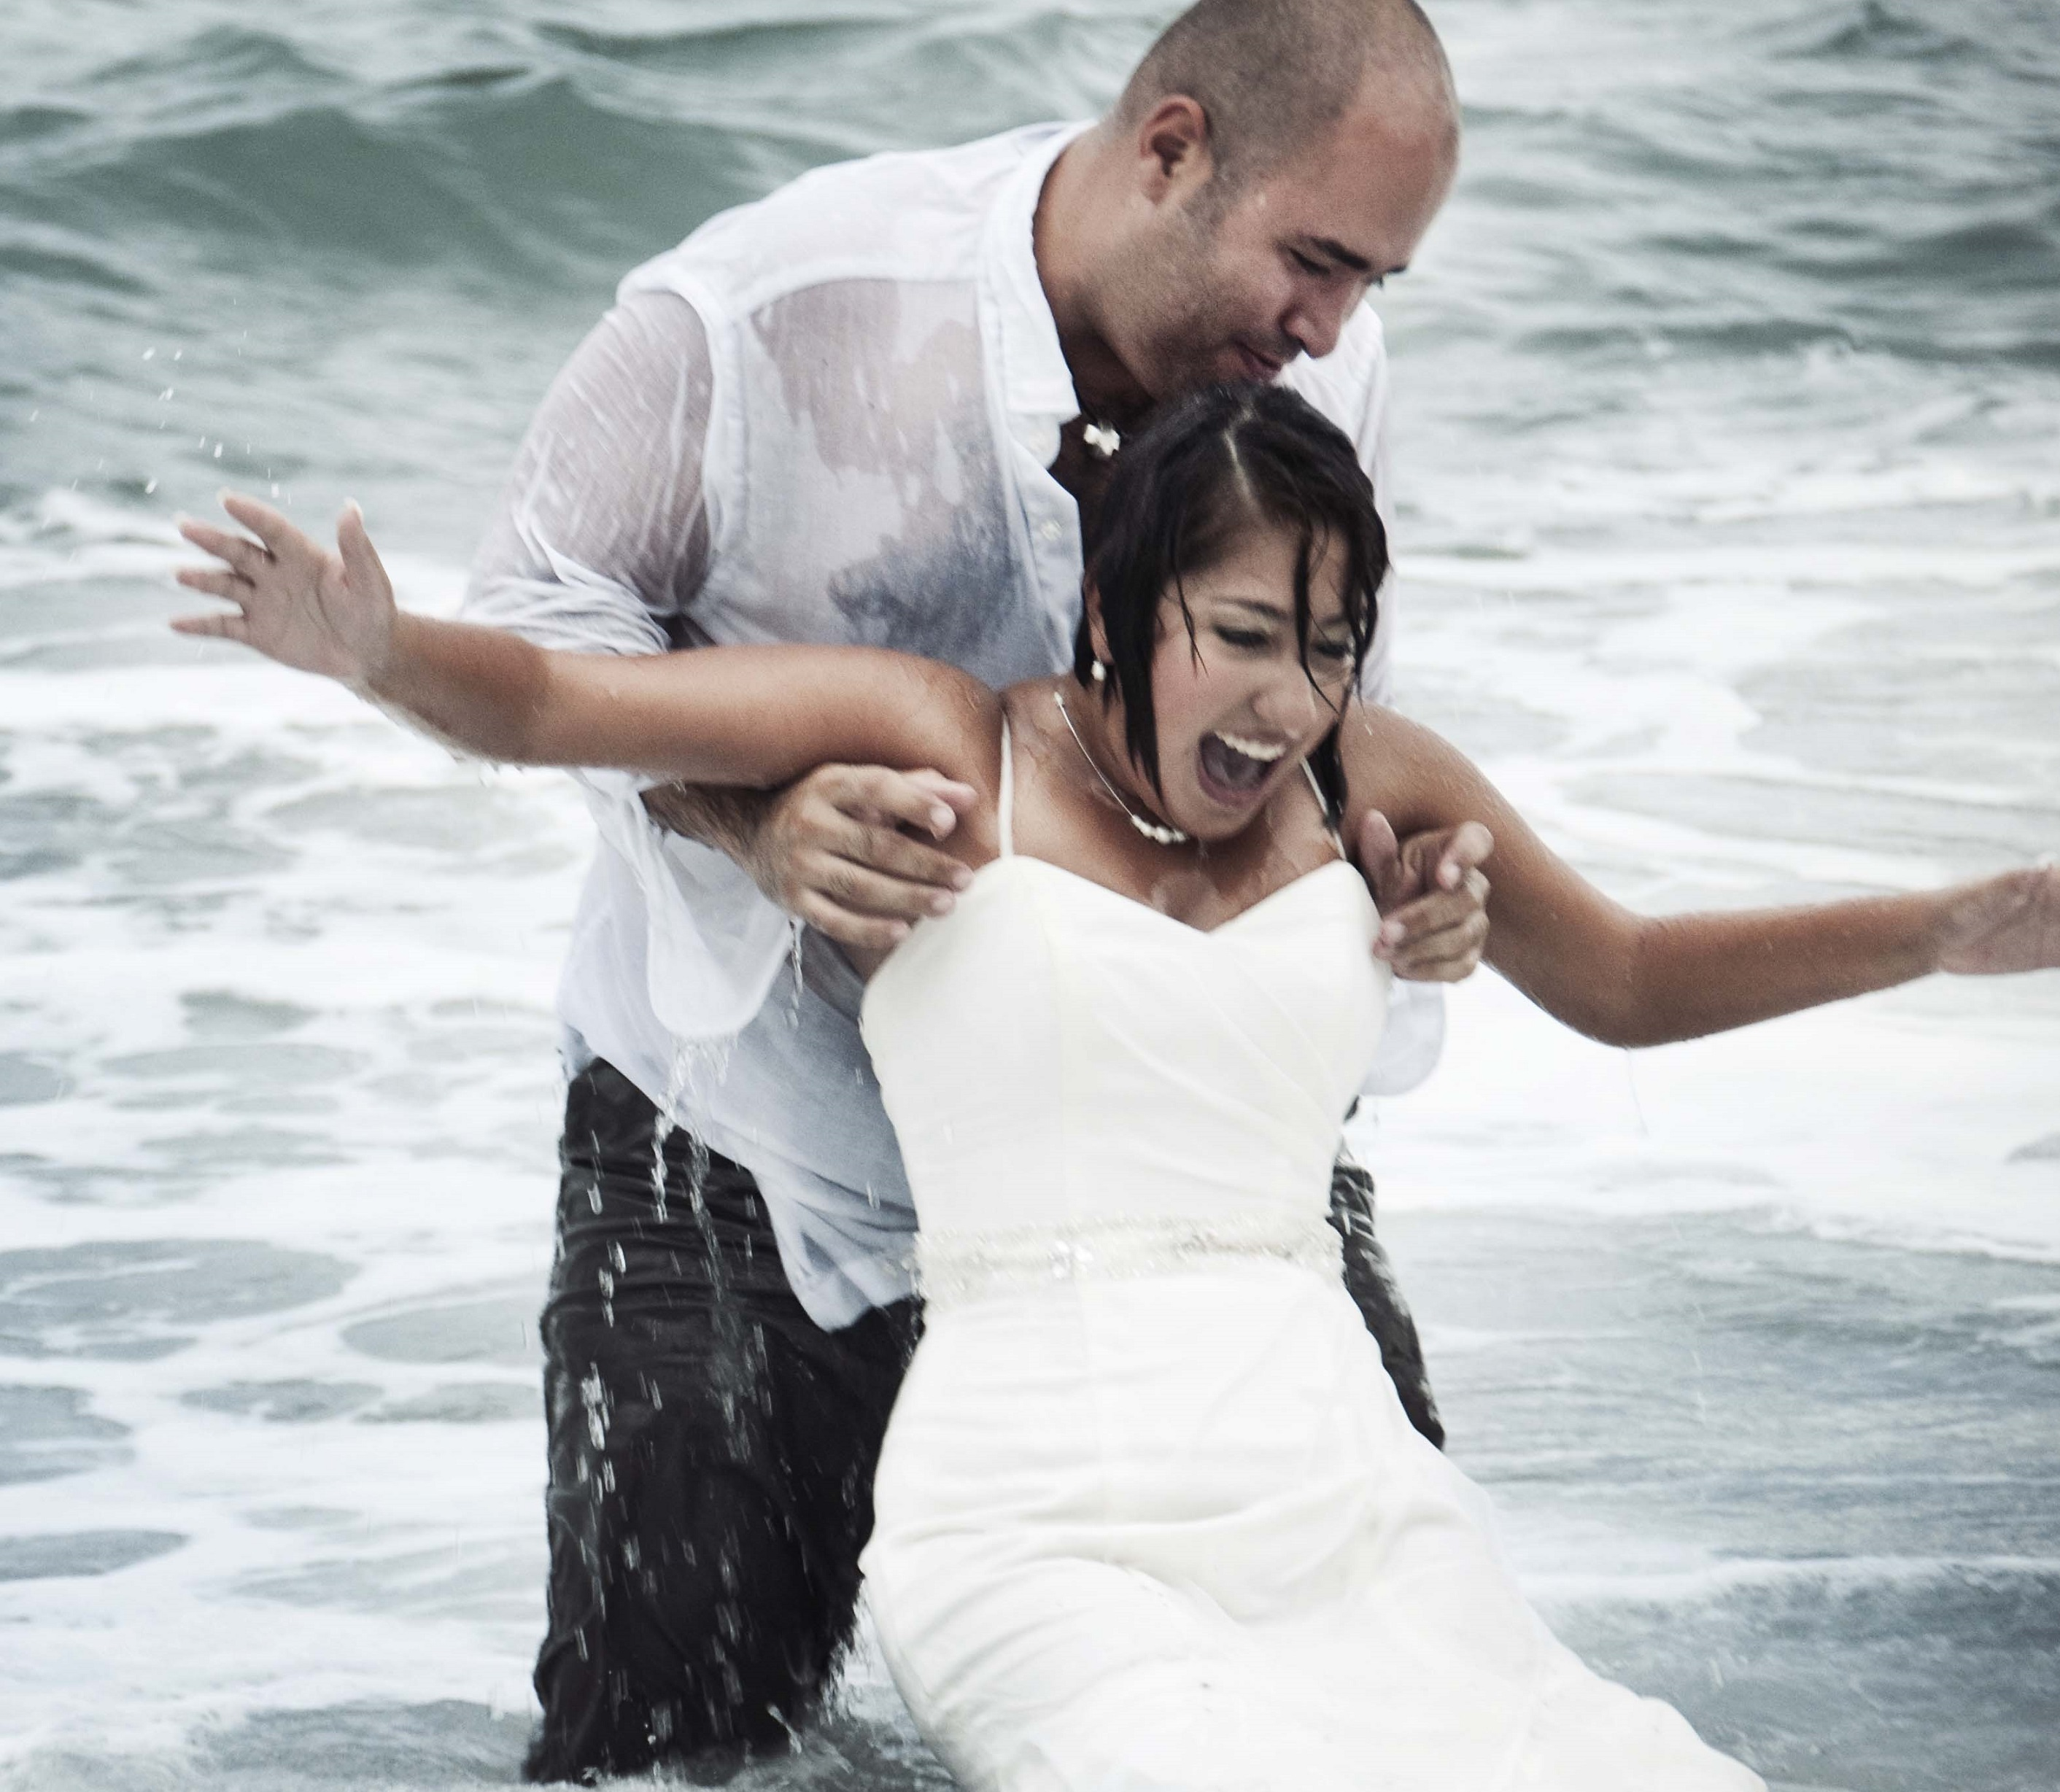 wedded couple having fun in water